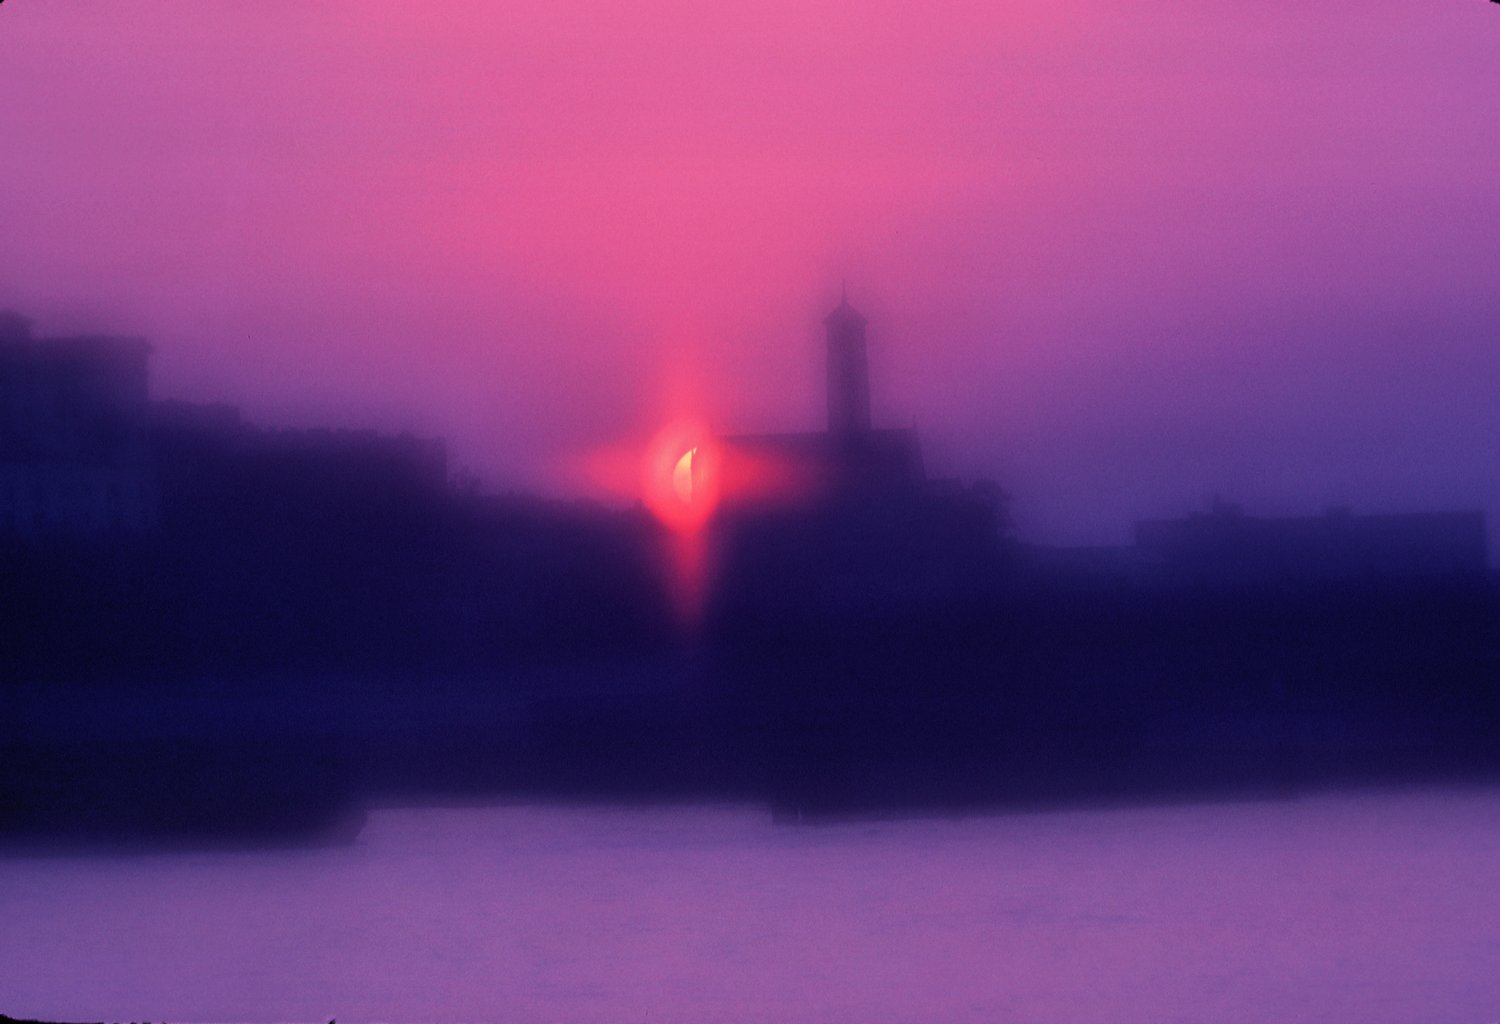 - Sunset from the ferry - Techno-Impressionist Museum - Techno-Impressionism - art - beautiful - photo photography picture - by Tony Karp